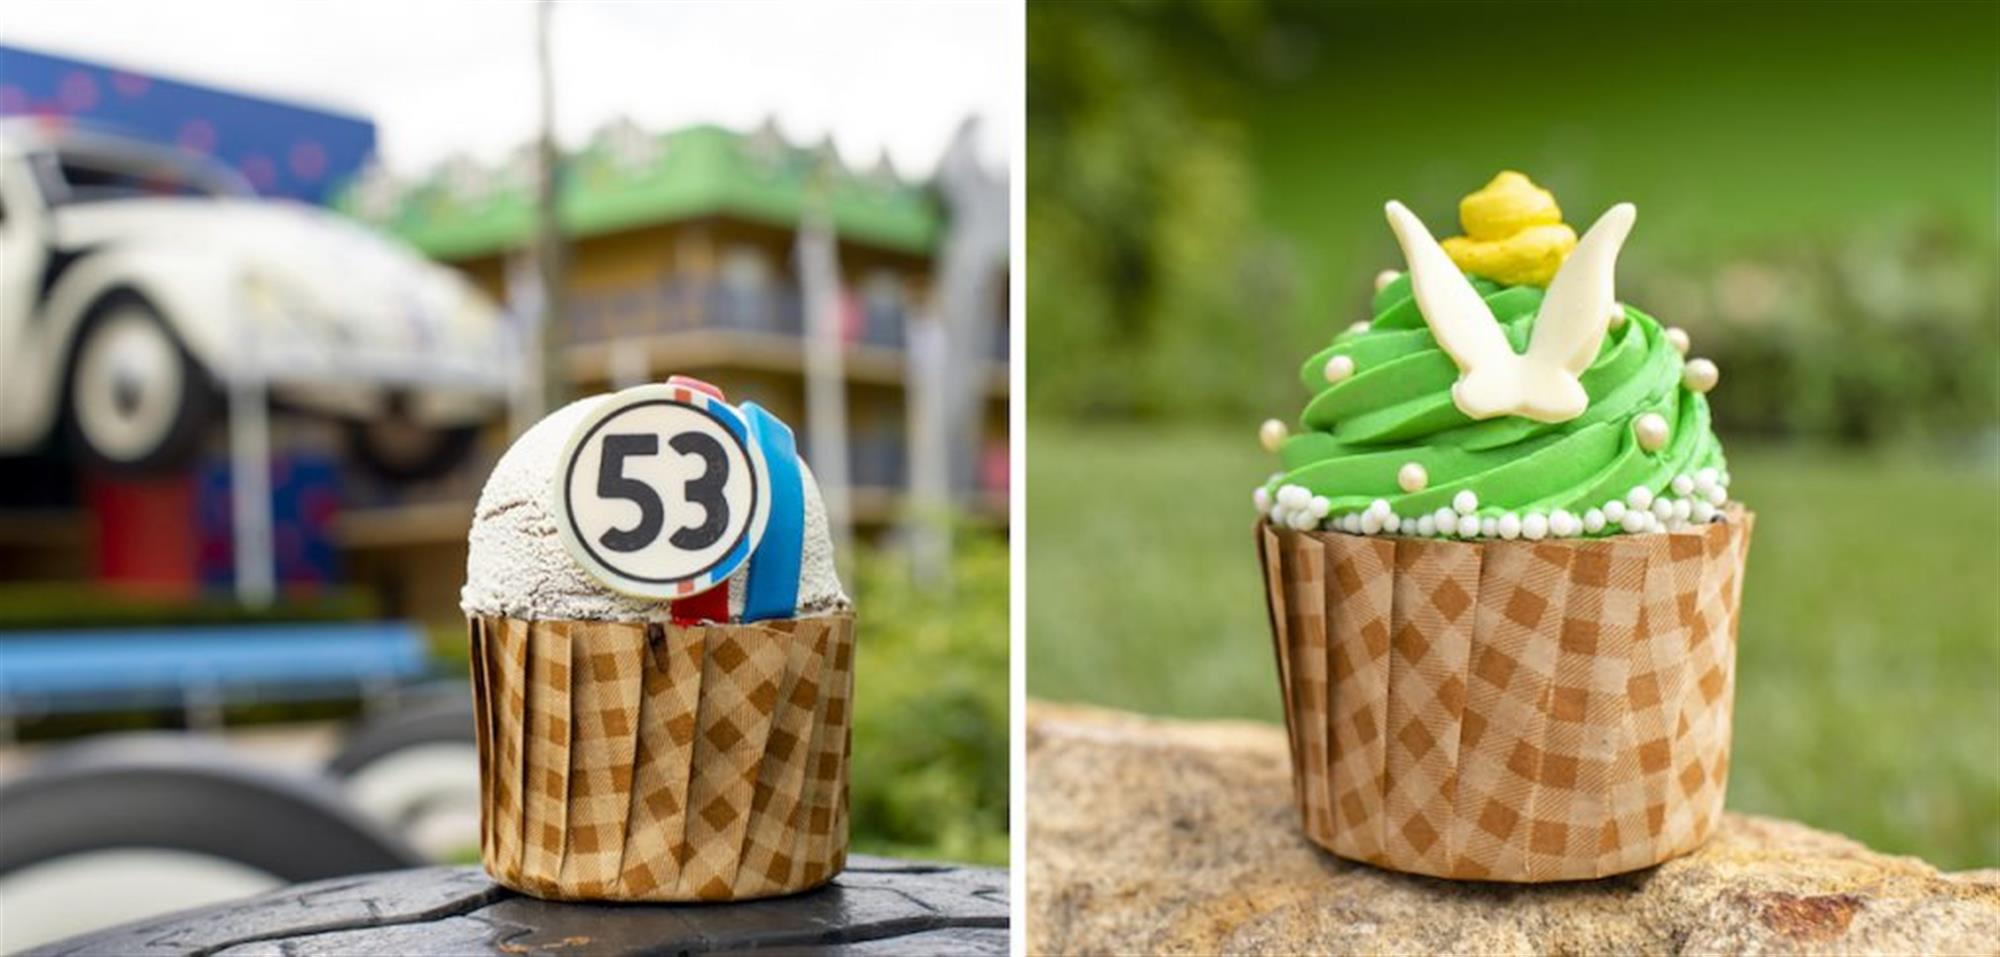 Themed Cupcakes at Disney's All-Star Music Resort